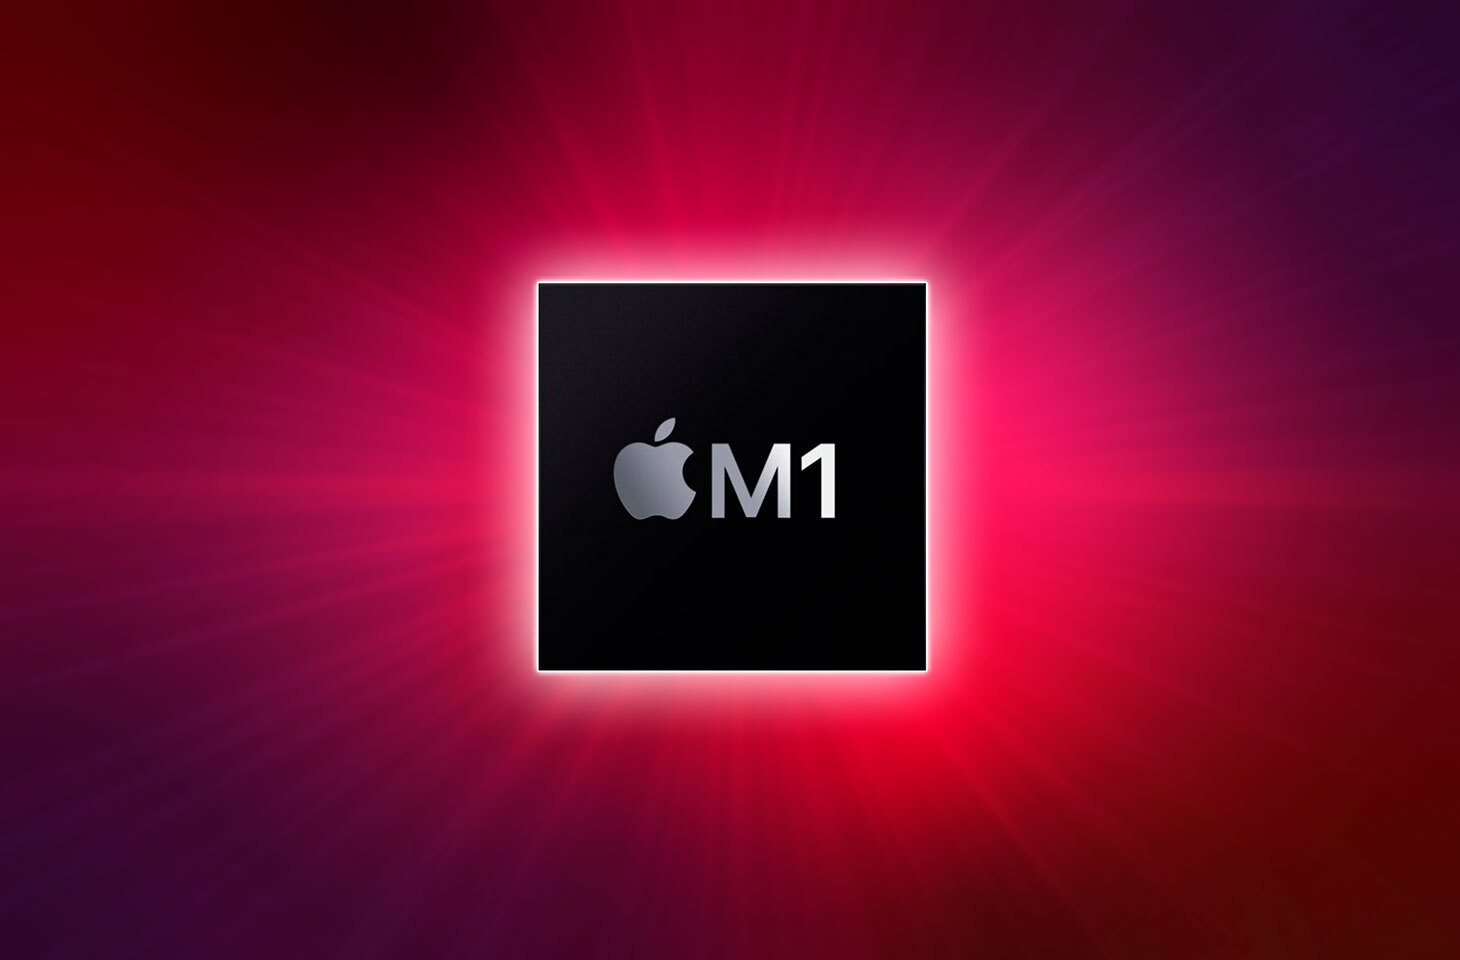 What's new in the malware adapted for the Apple M1, is this malware dangerous, and how you can protect yourself from it